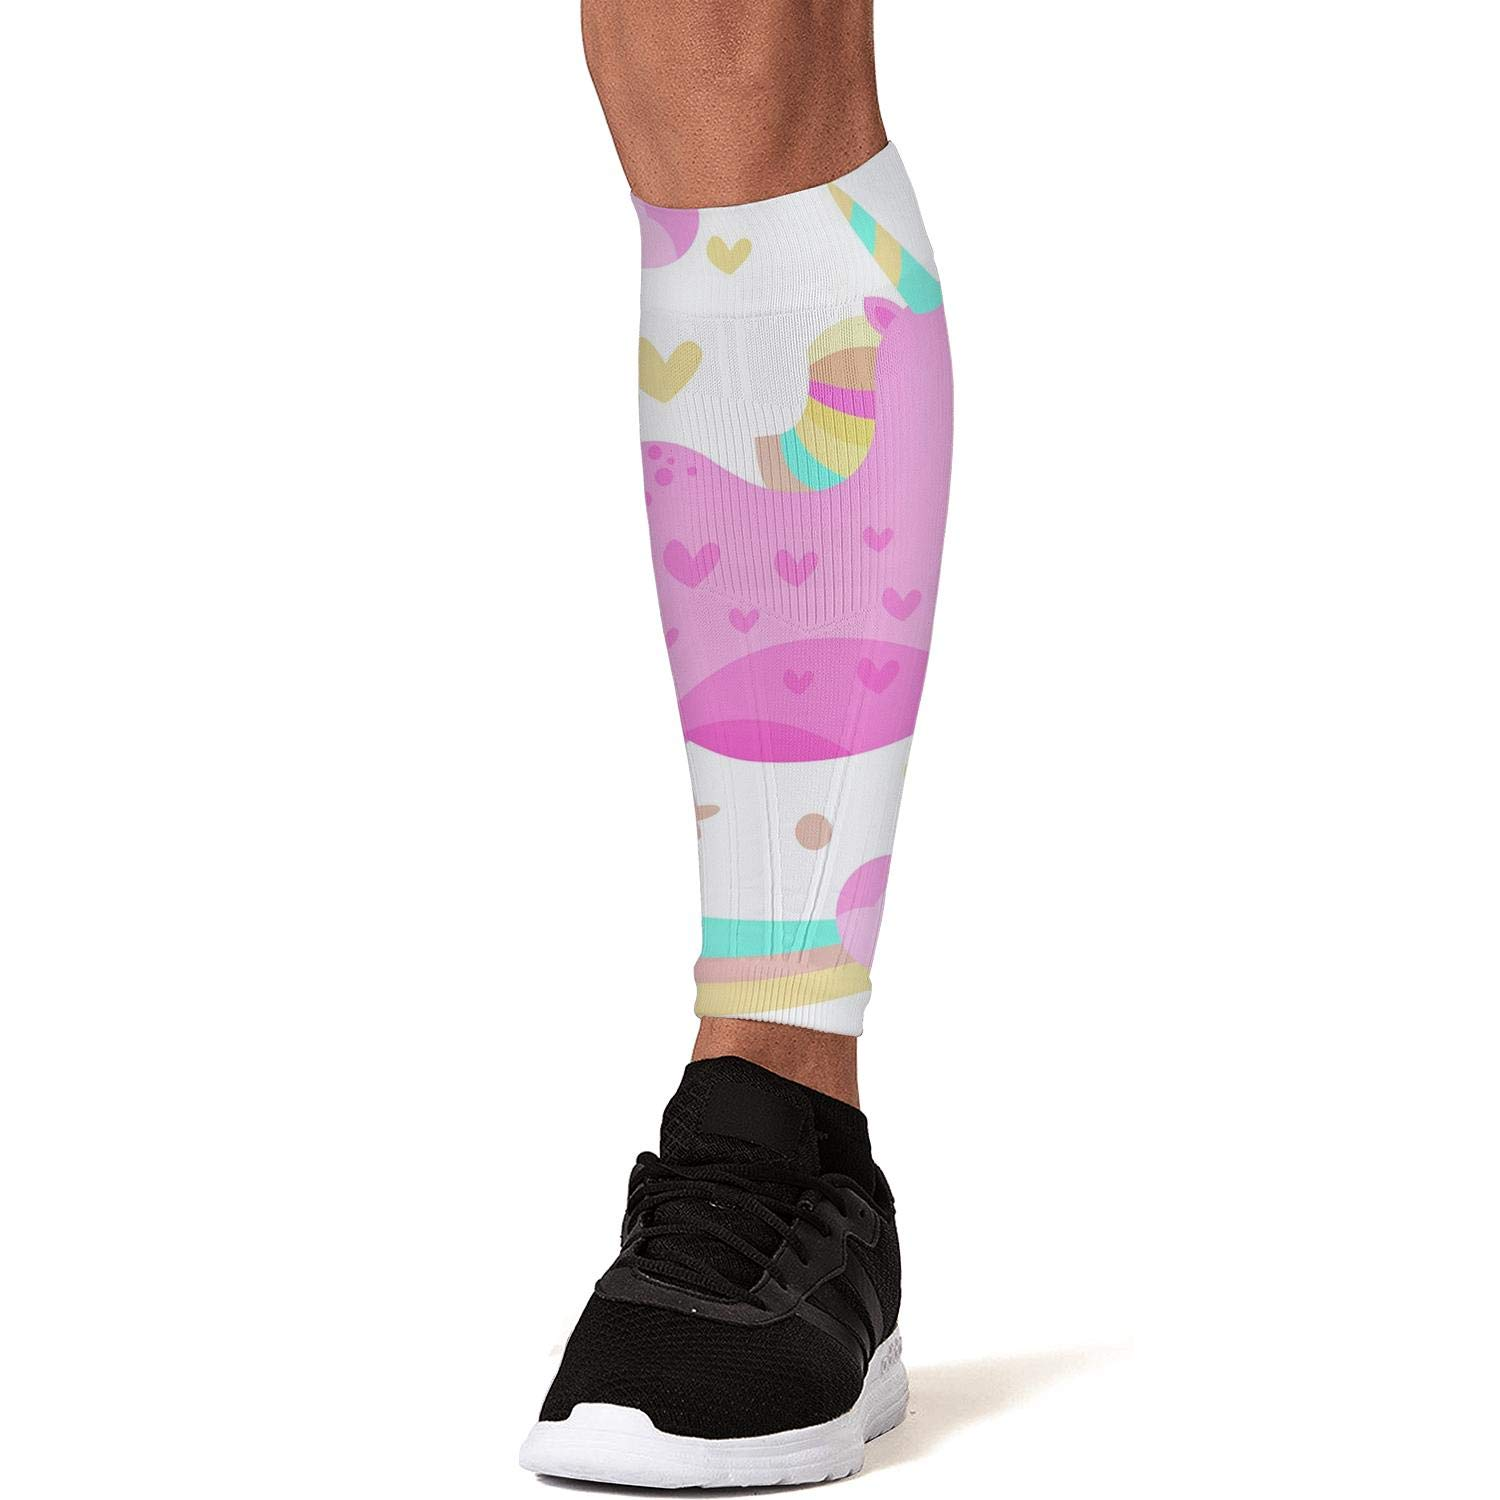 Smilelolly rainbow Calf Compression Sleeves Helps Calf Guard Leg Sleeves for Men Women